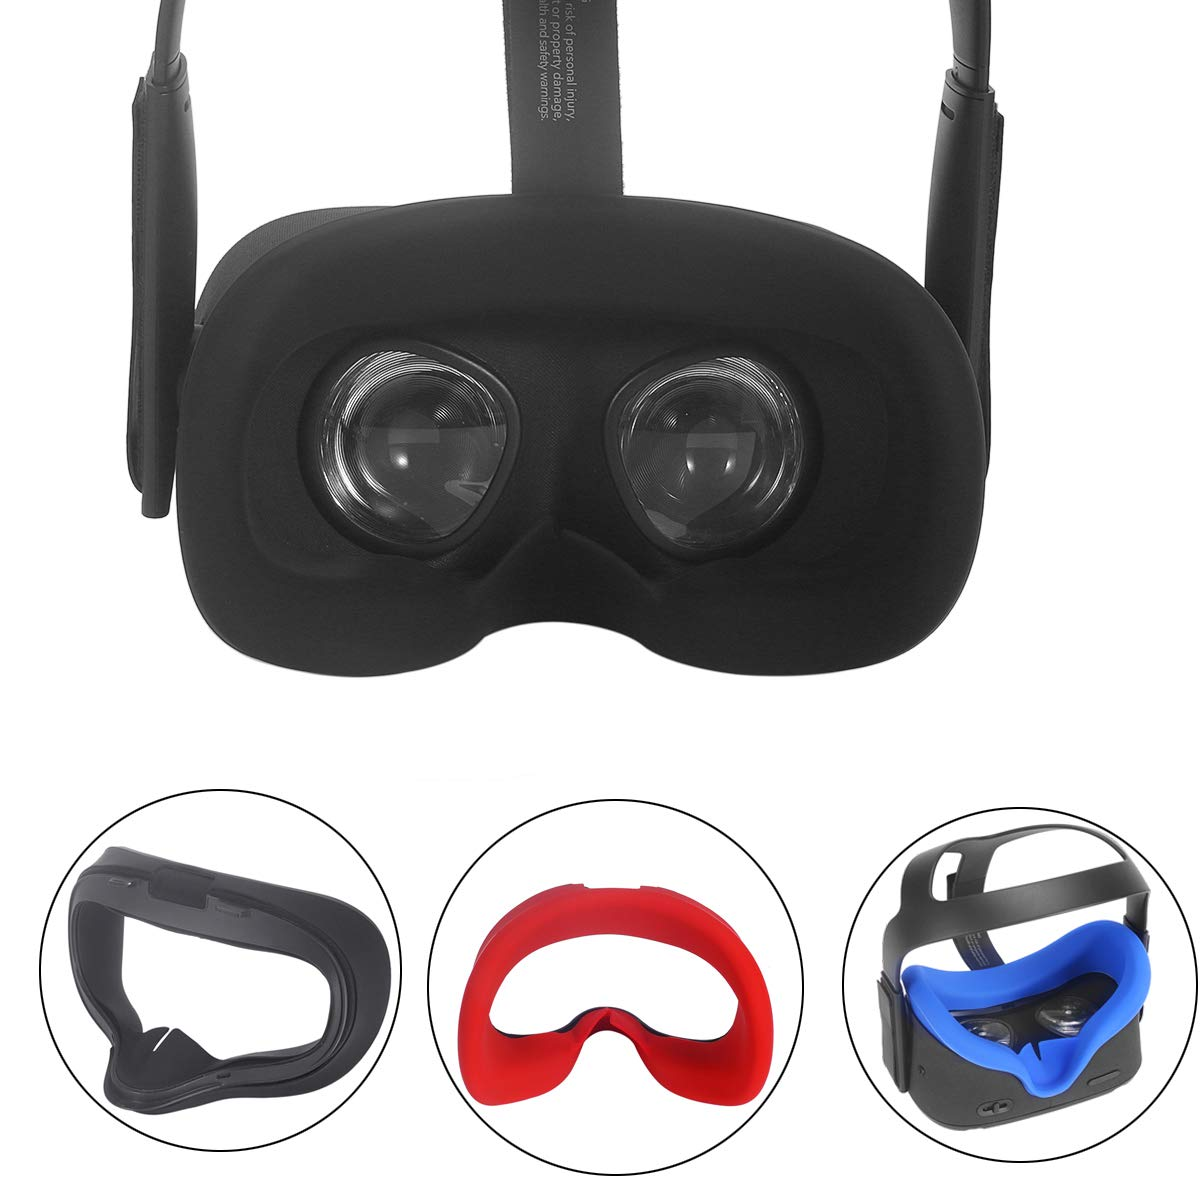 Esimen VR Face Silicone Mask & Face Cover for Oculus Quest Face Pad Cushion Sweatproof Lightproof (Black)